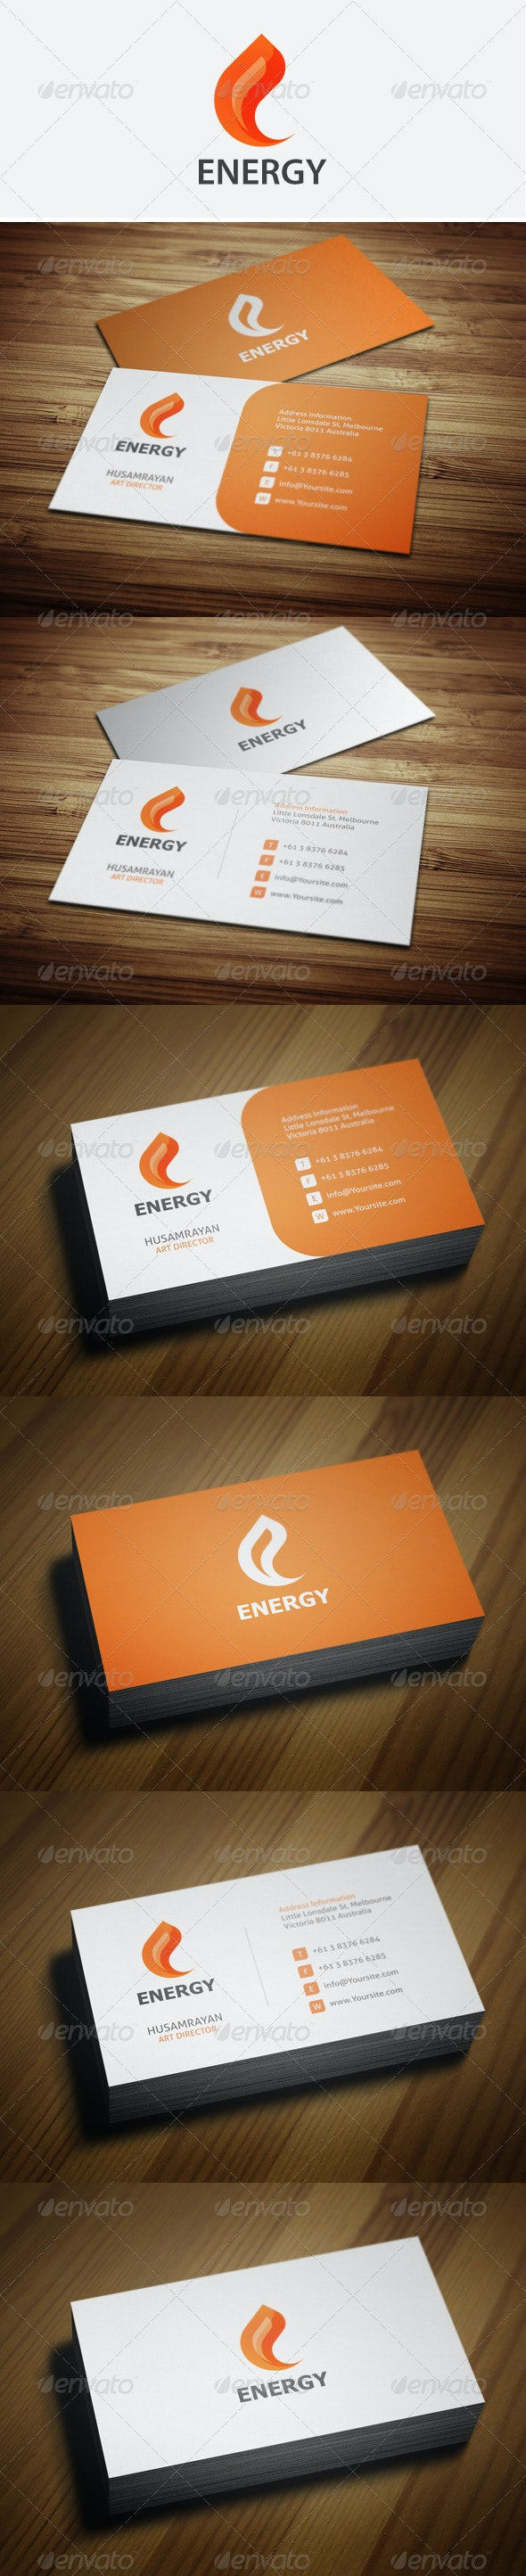 Energy Business Cards - Corporate Business Cards